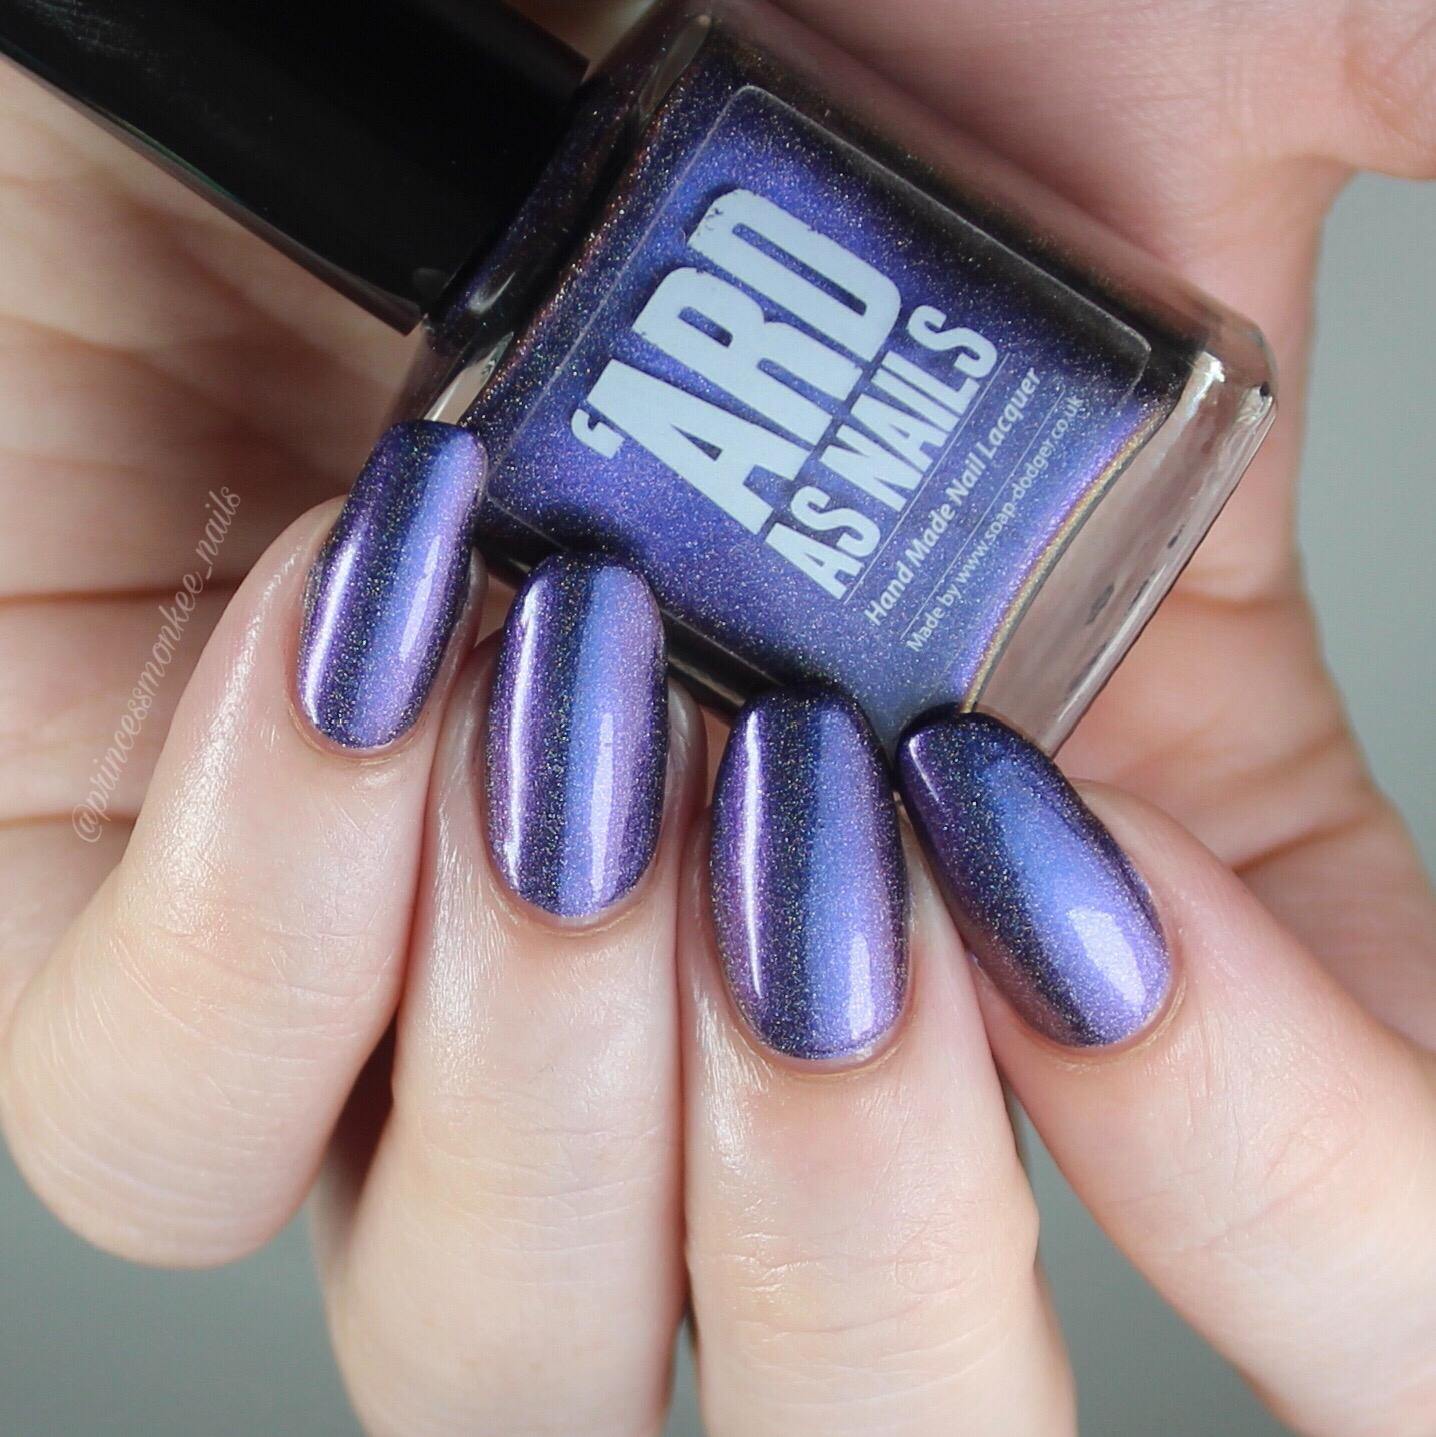 'Ard As Nails - Oh So Shifty - Twilight